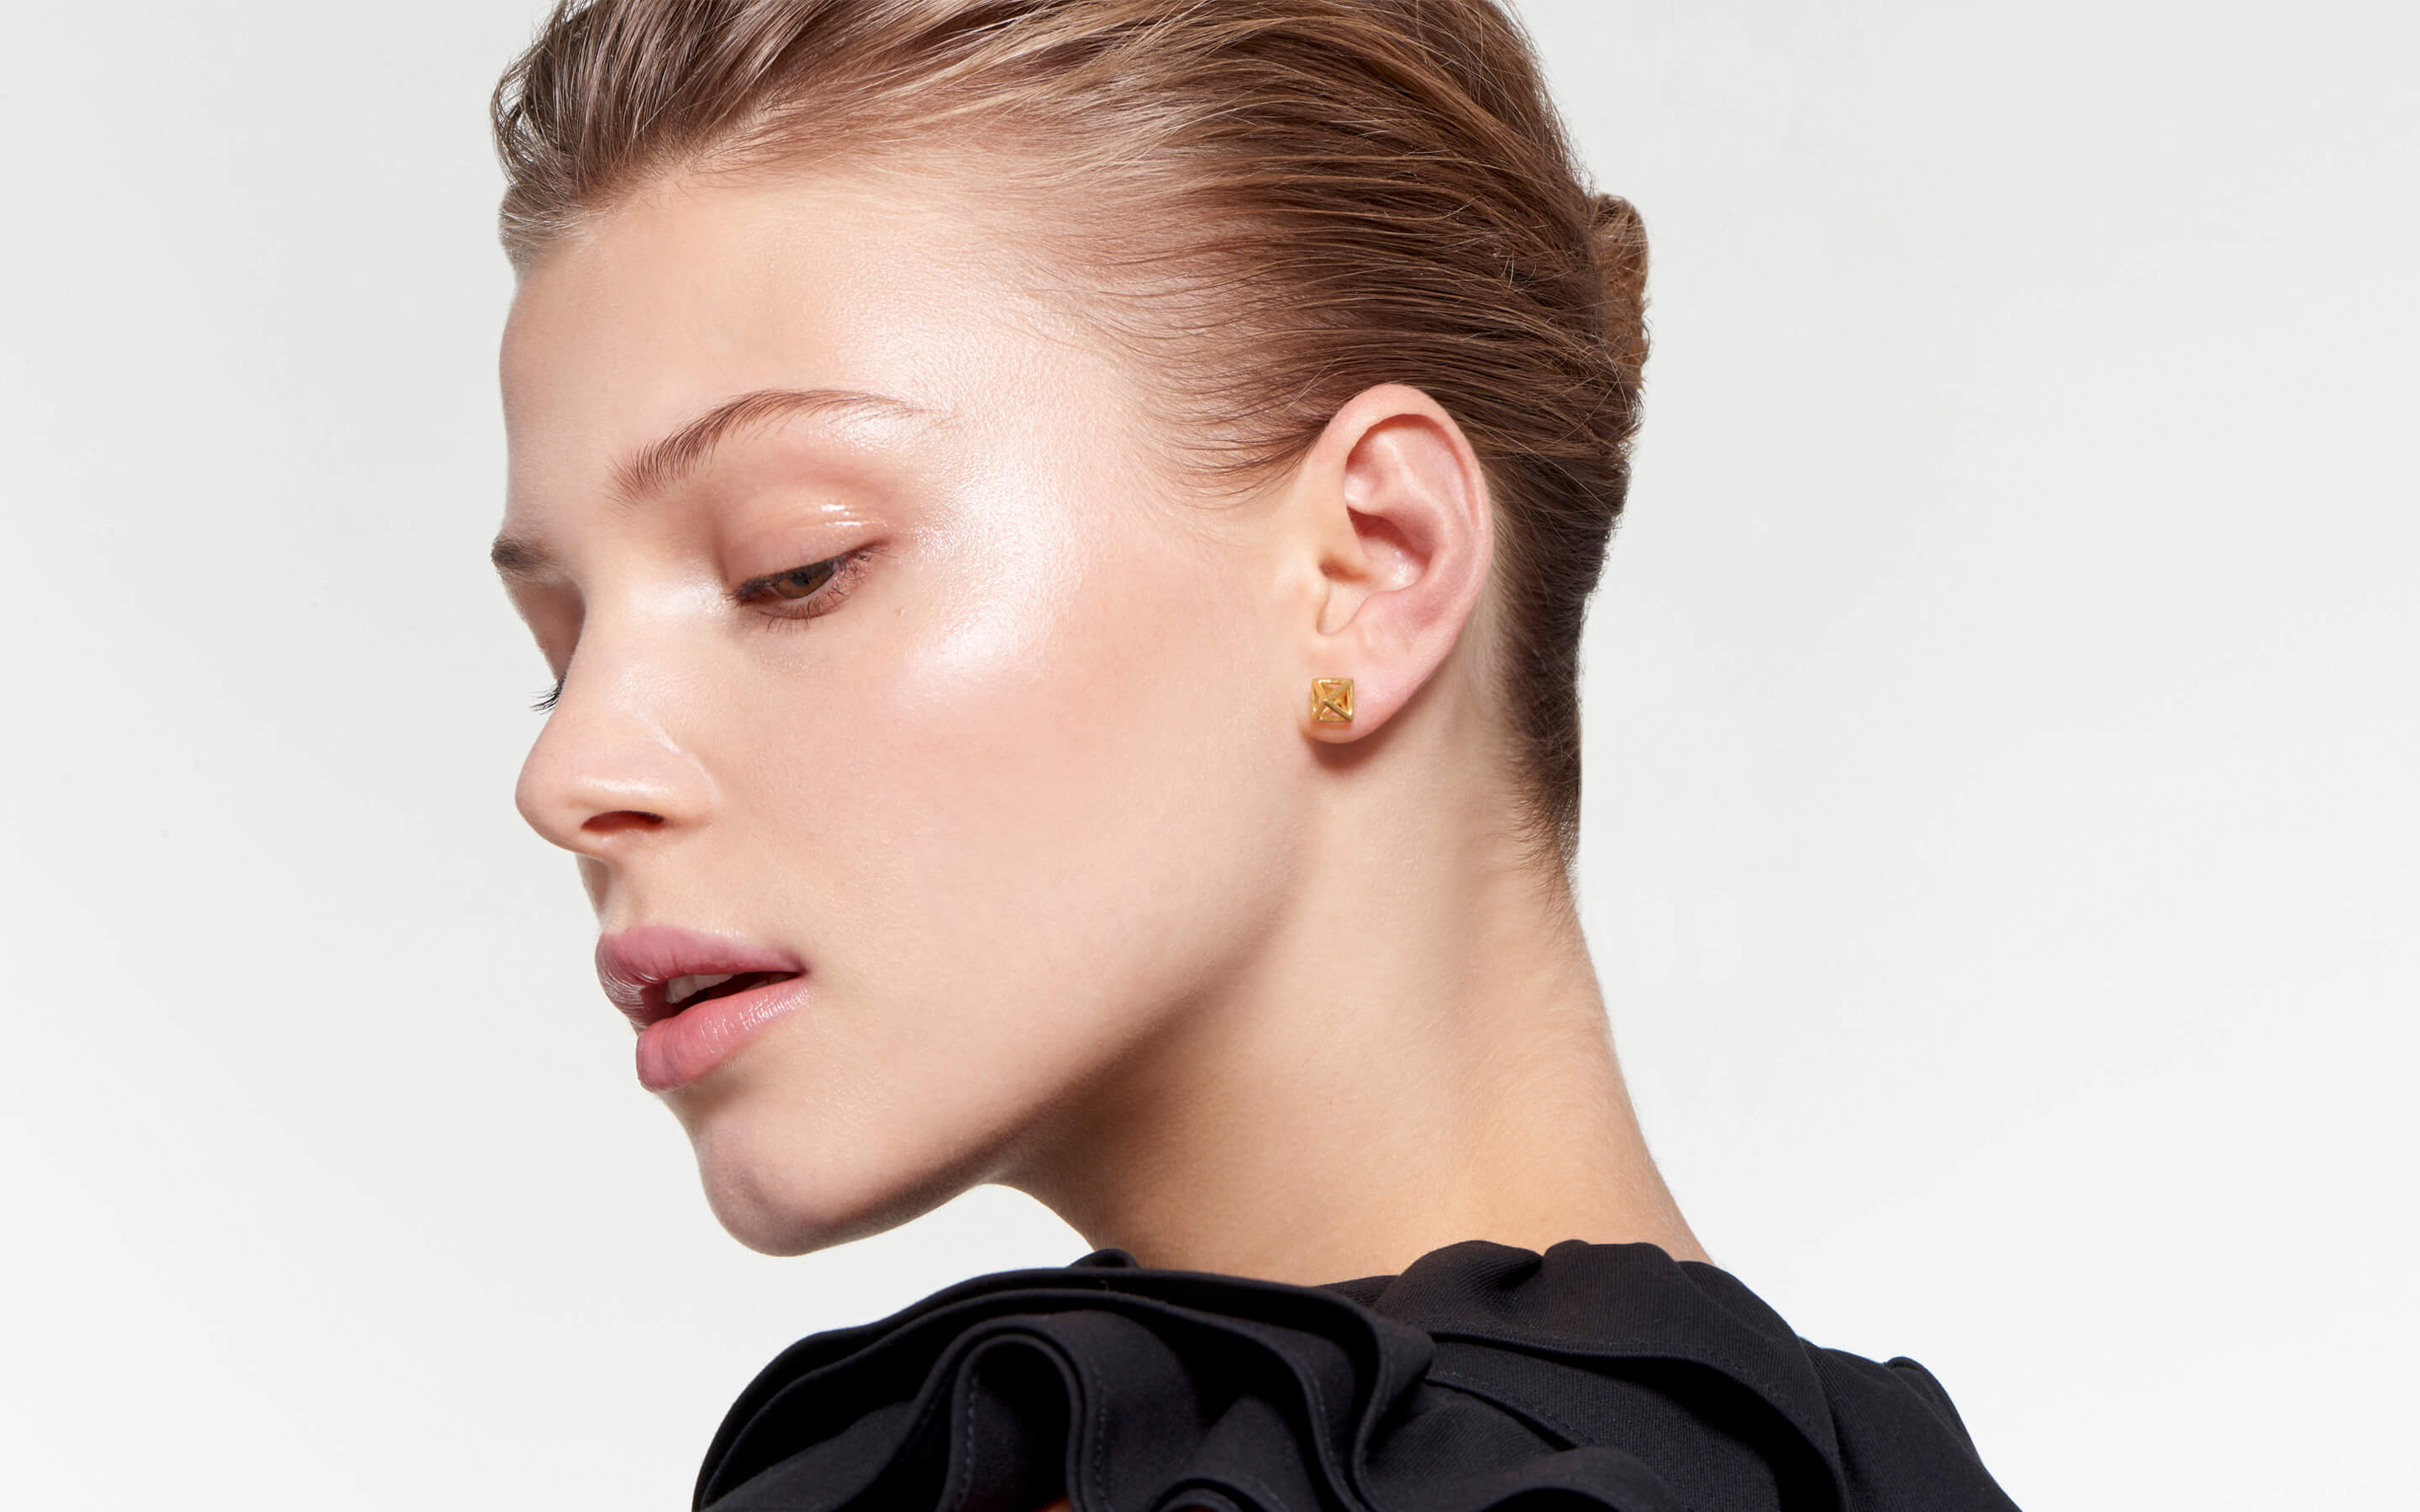 enigmatic model wearing glowing geometric stud earrings made of 22 karat polished gold